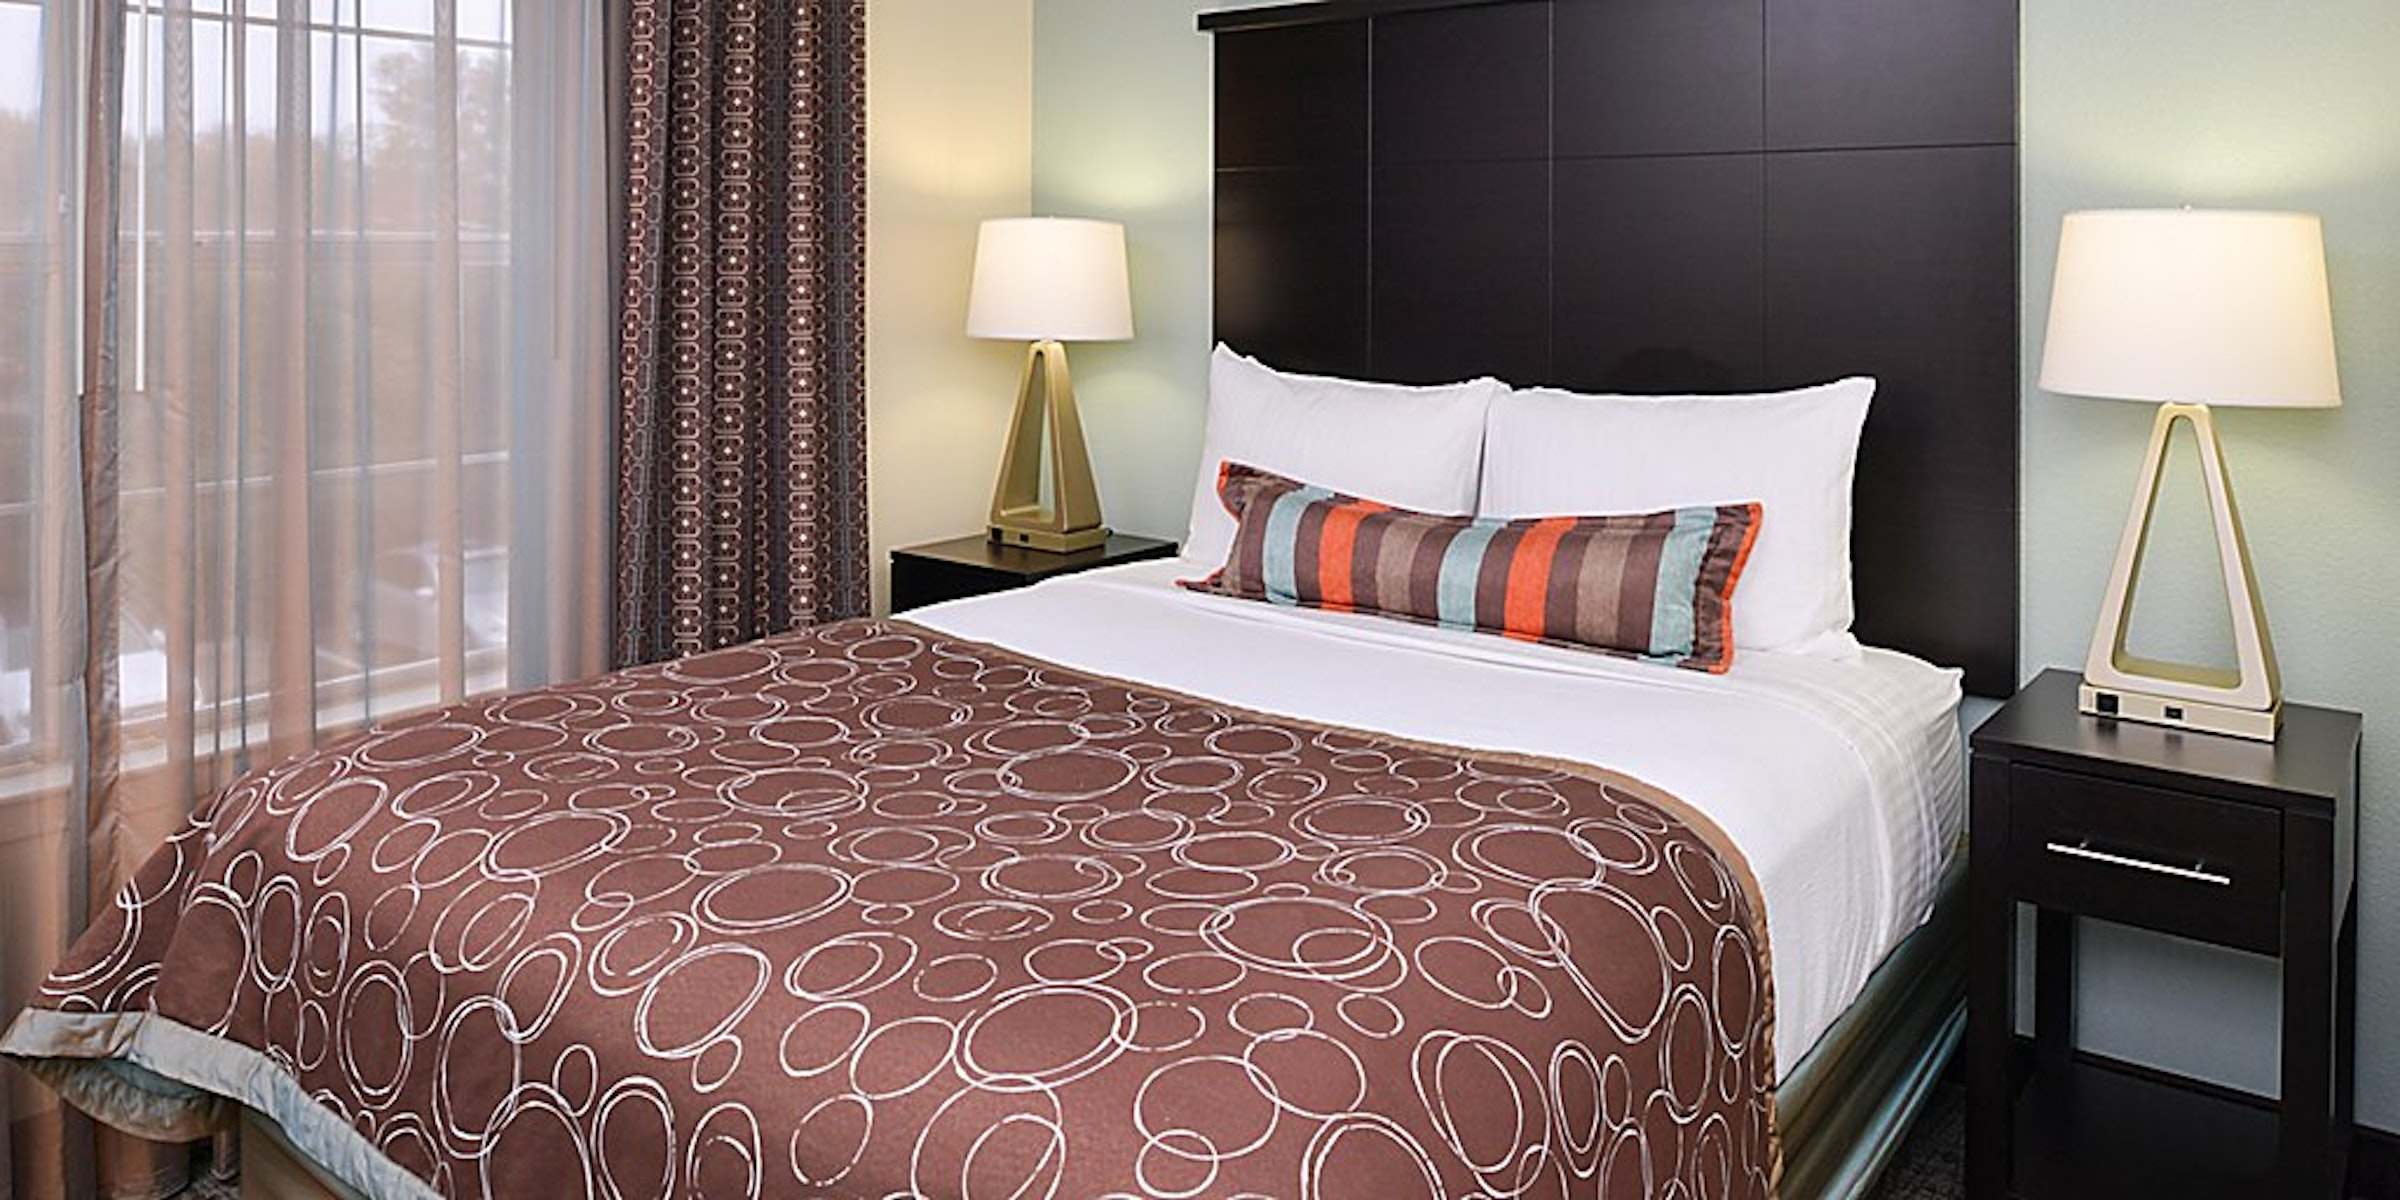 Staybridge Suites Dallas Addison in Beyond Dallas